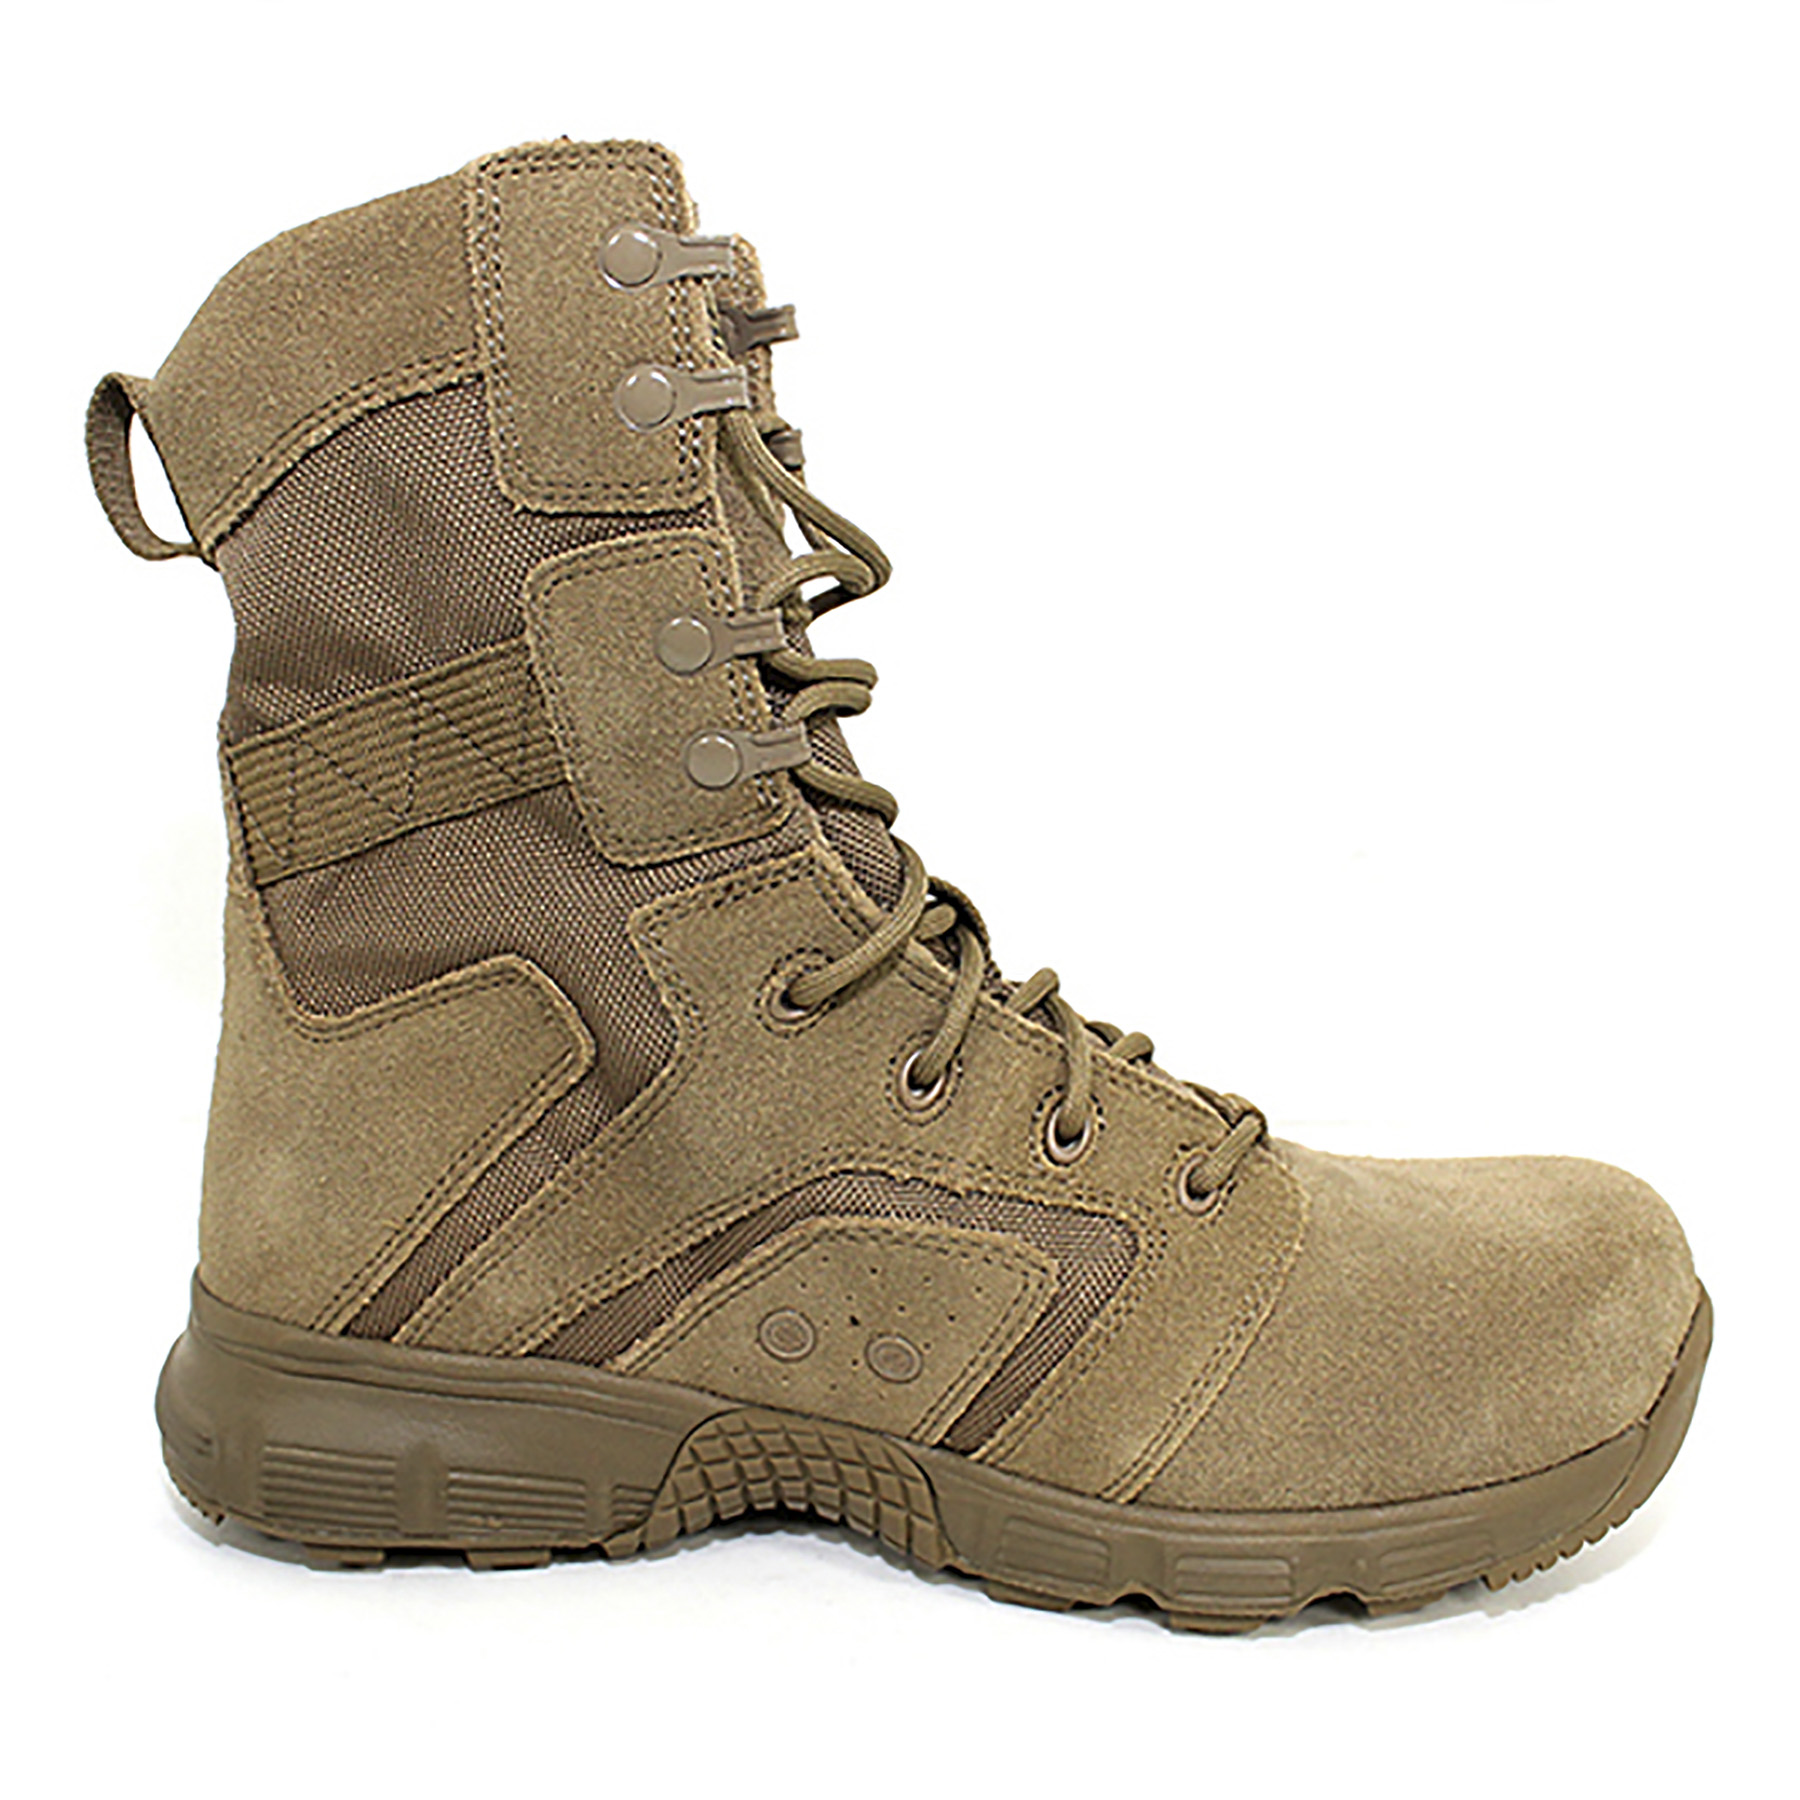 Reebok Patriot 1571C All Terrain Combat Boot (Coyote) - 6 M